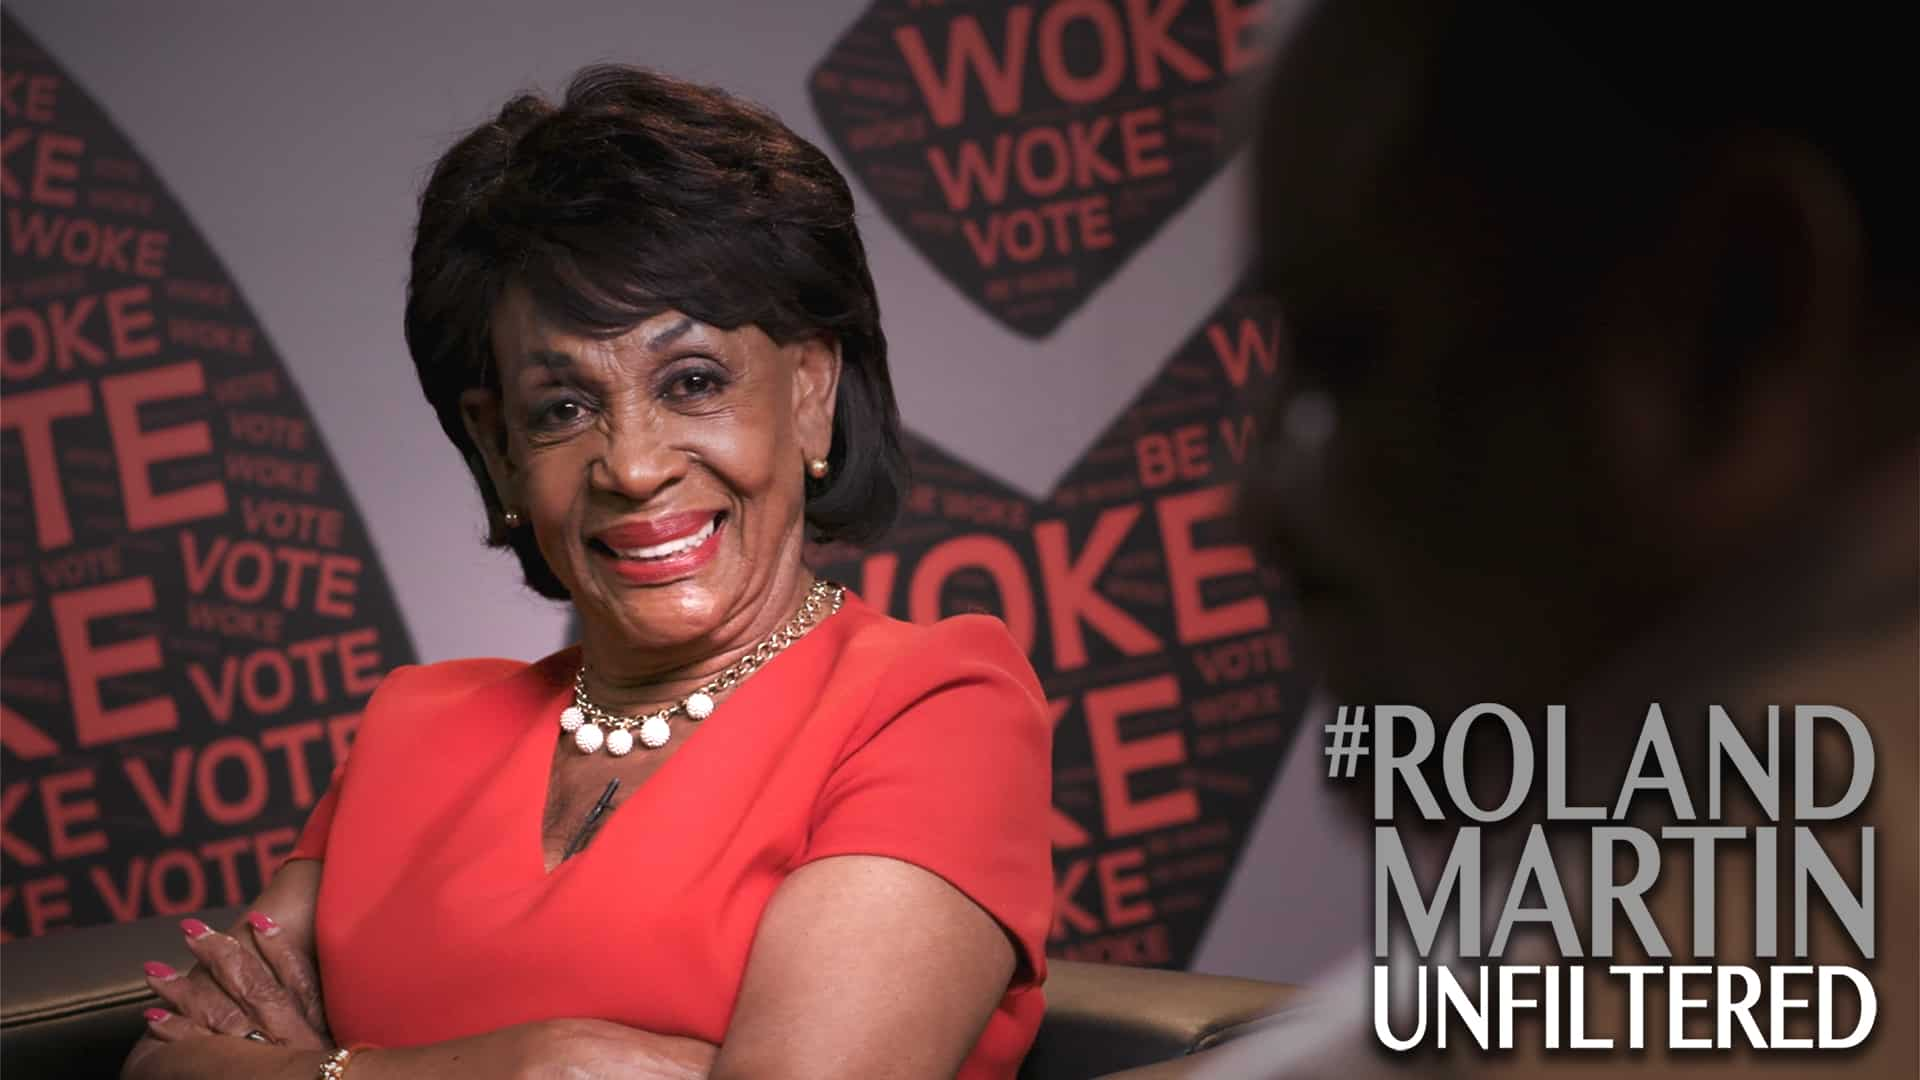 Be Woke.Vote presents Maxine Waters